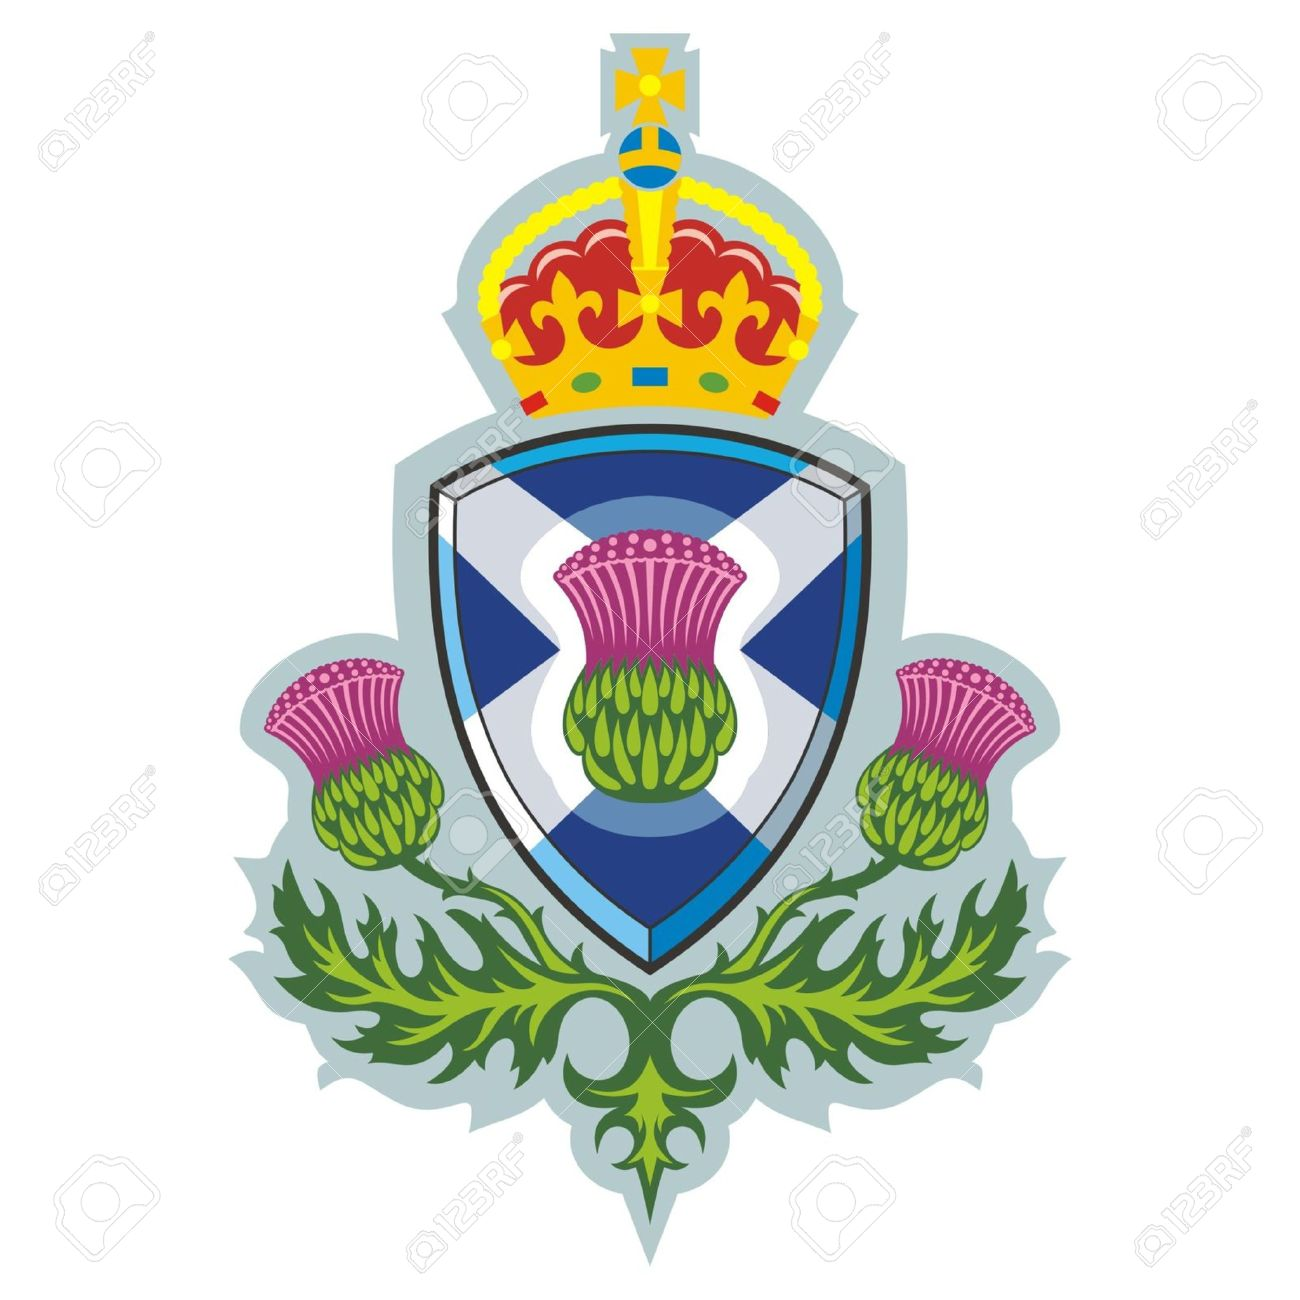 scottish thistle symbol of scotland vector royalty free cliparts